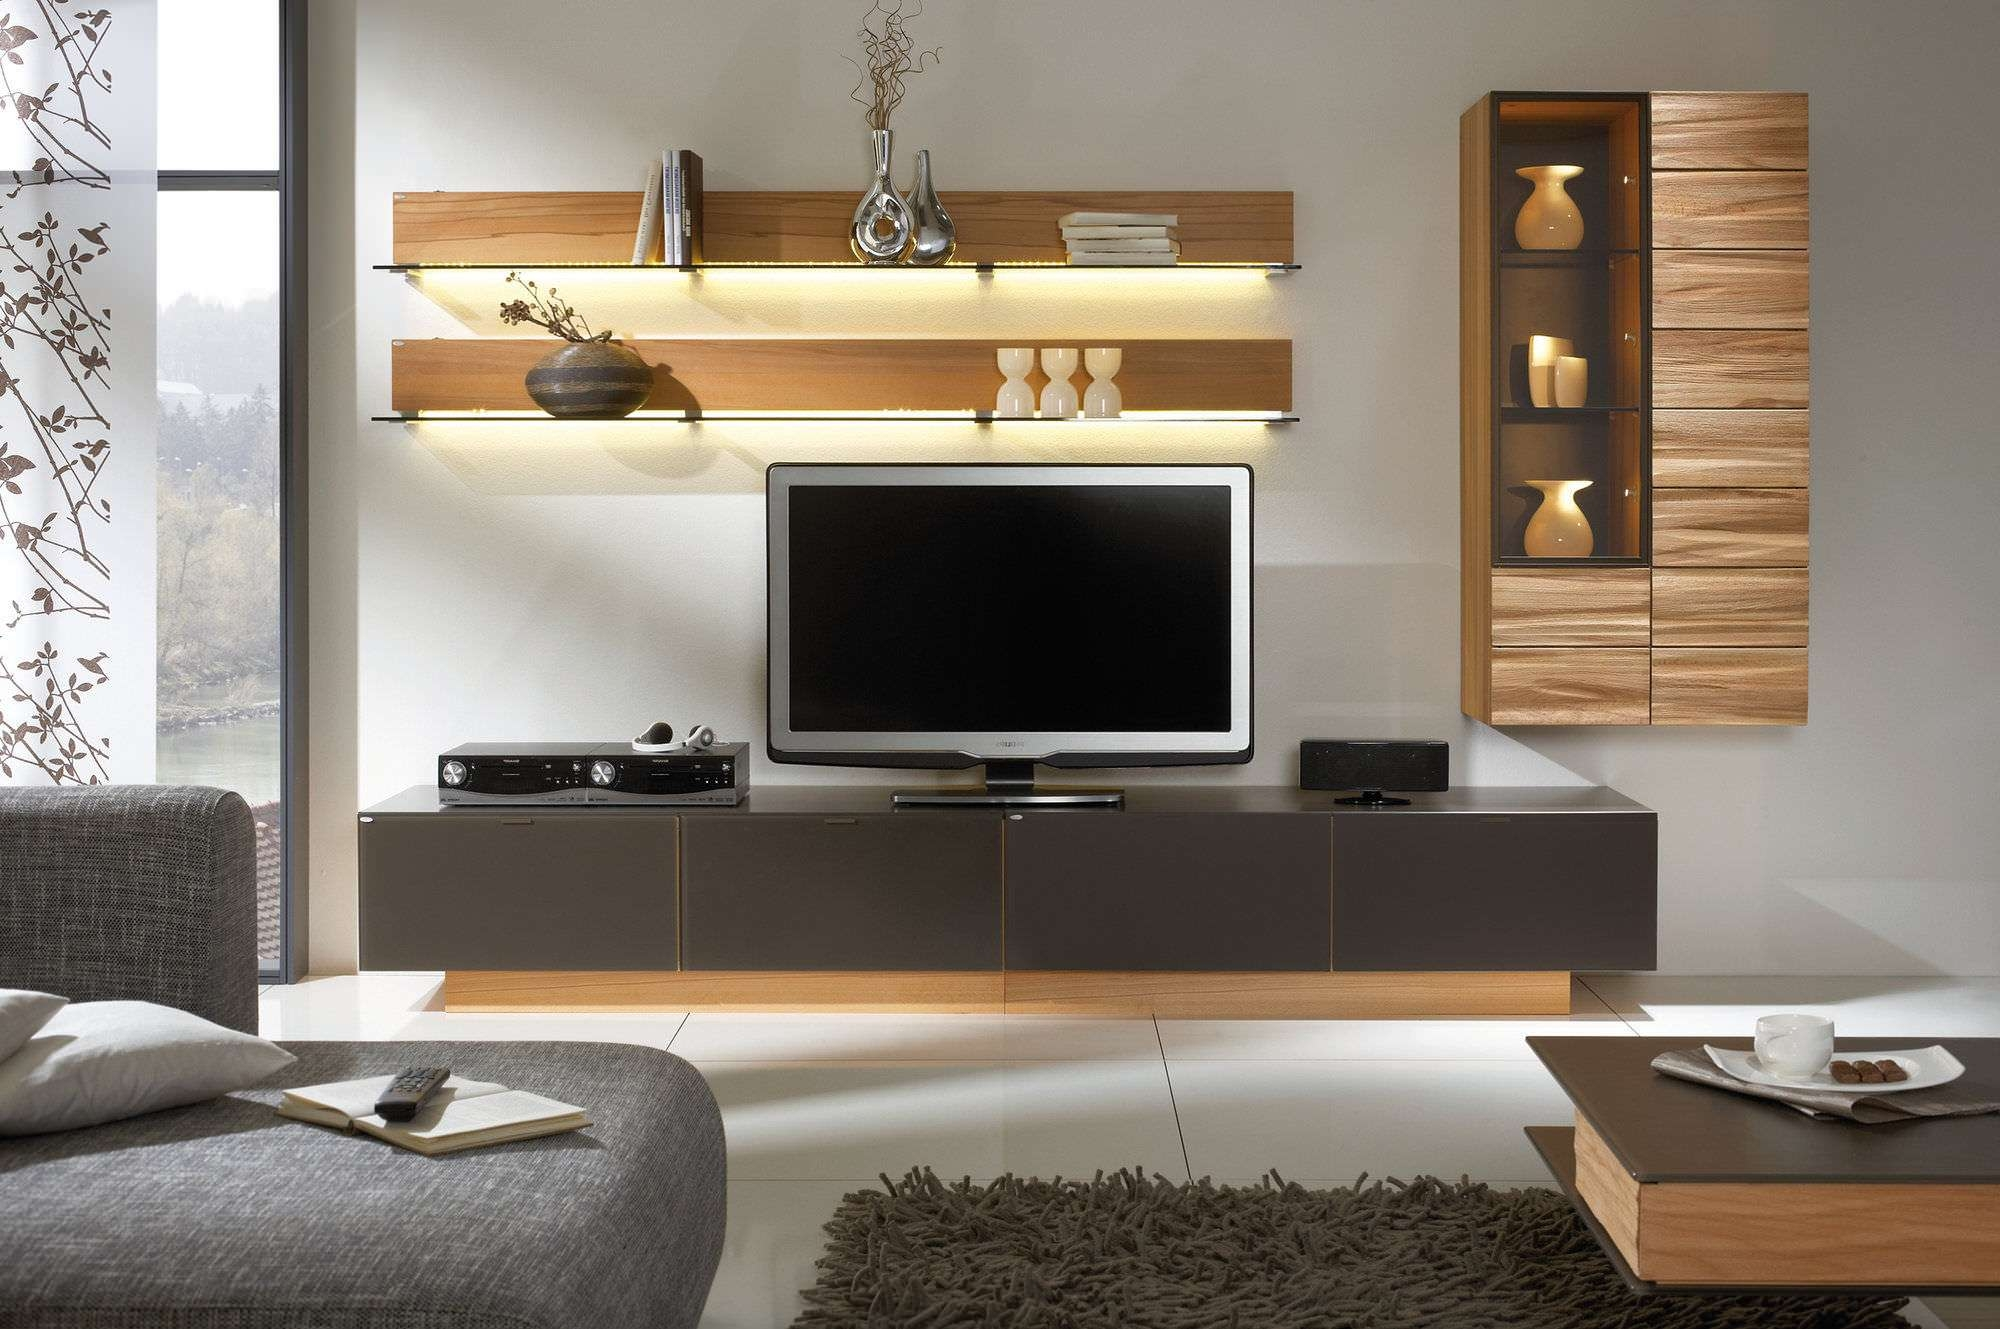 Ideas About Contemporary Tv Units Panel Trends Including Built In Intended For Contemporary Tv Cabinets (View 11 of 20)